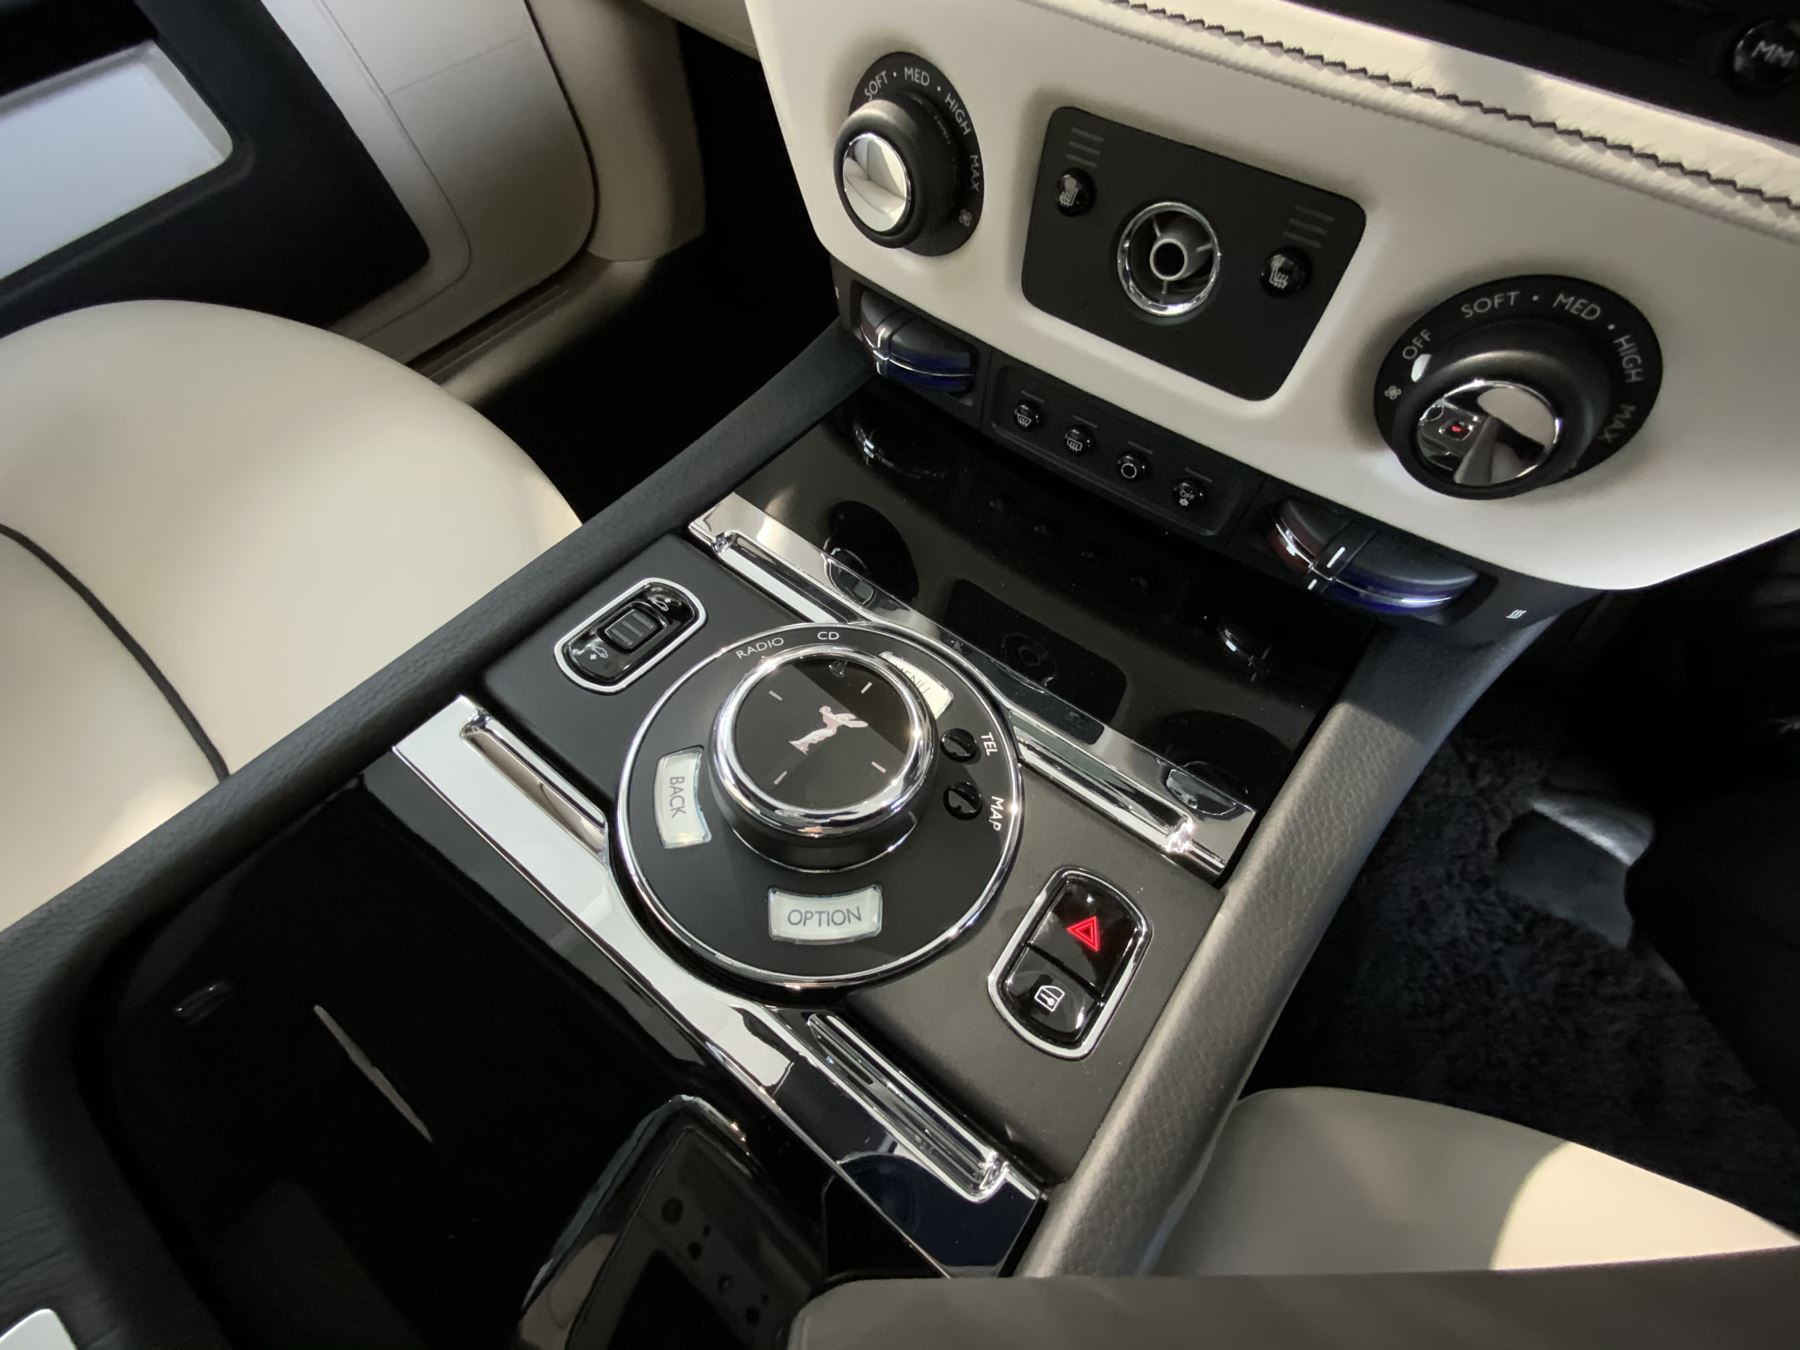 Rolls-Royce Ghost V-SPEC 4dr Auto image 15